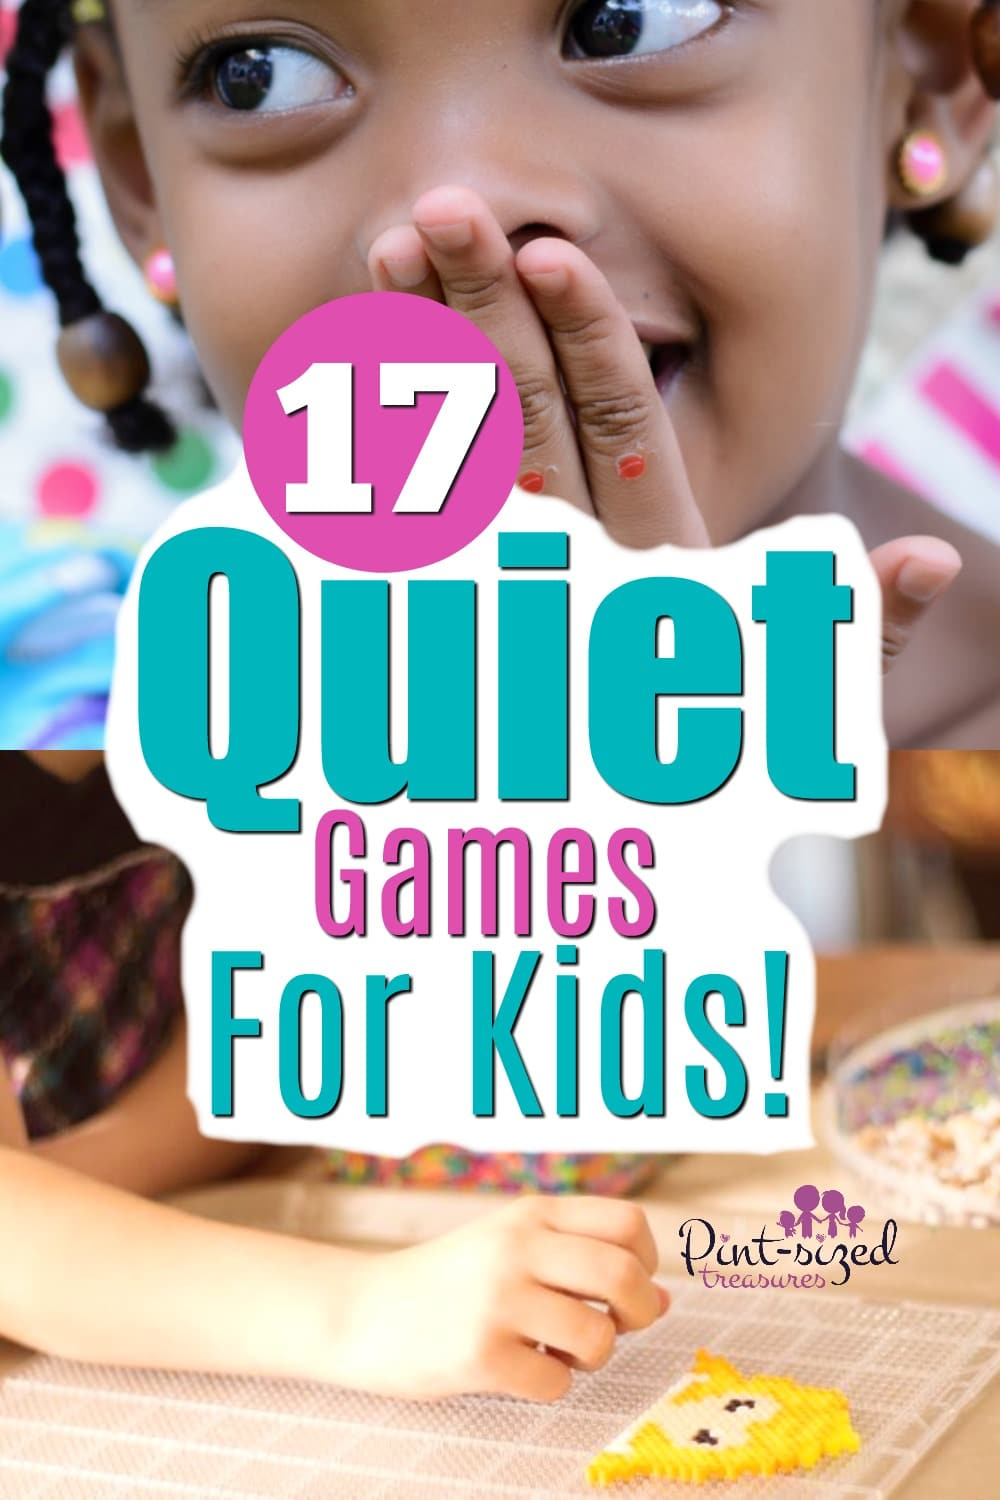 Quiet games for kids